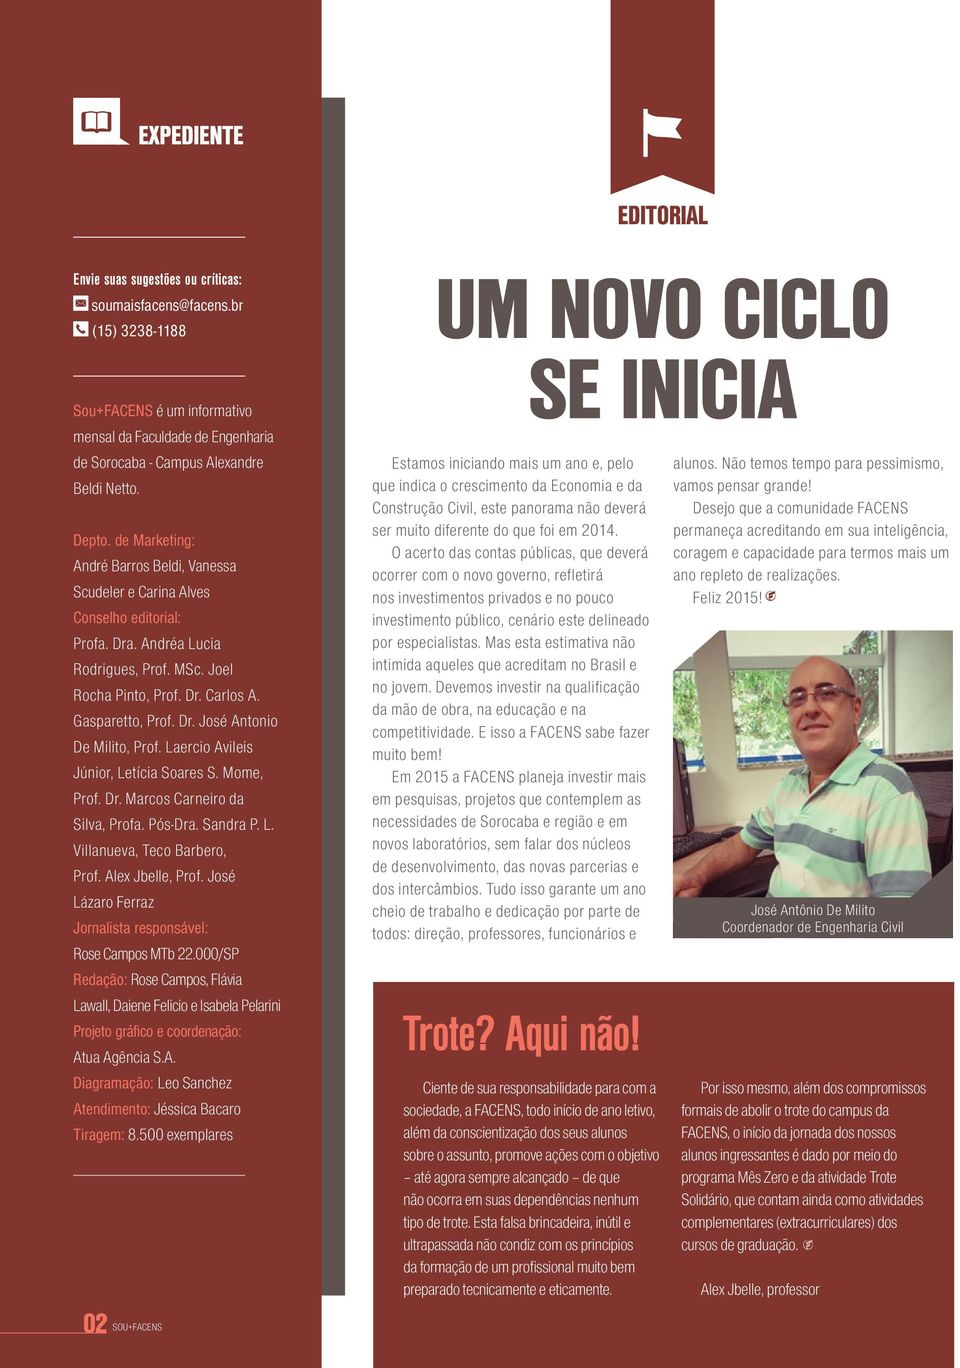 de Marketing: André Barros Beldi, Vanessa Scudeler e Carina Alves Conselho editorial: Profa. Dra. Andréa Lucia Rodrigues, Prof. MSc. Joel Rocha Pinto, Prof. Dr. Carlos A. Gasparetto, Prof. Dr. José Antonio De Milito, Prof.